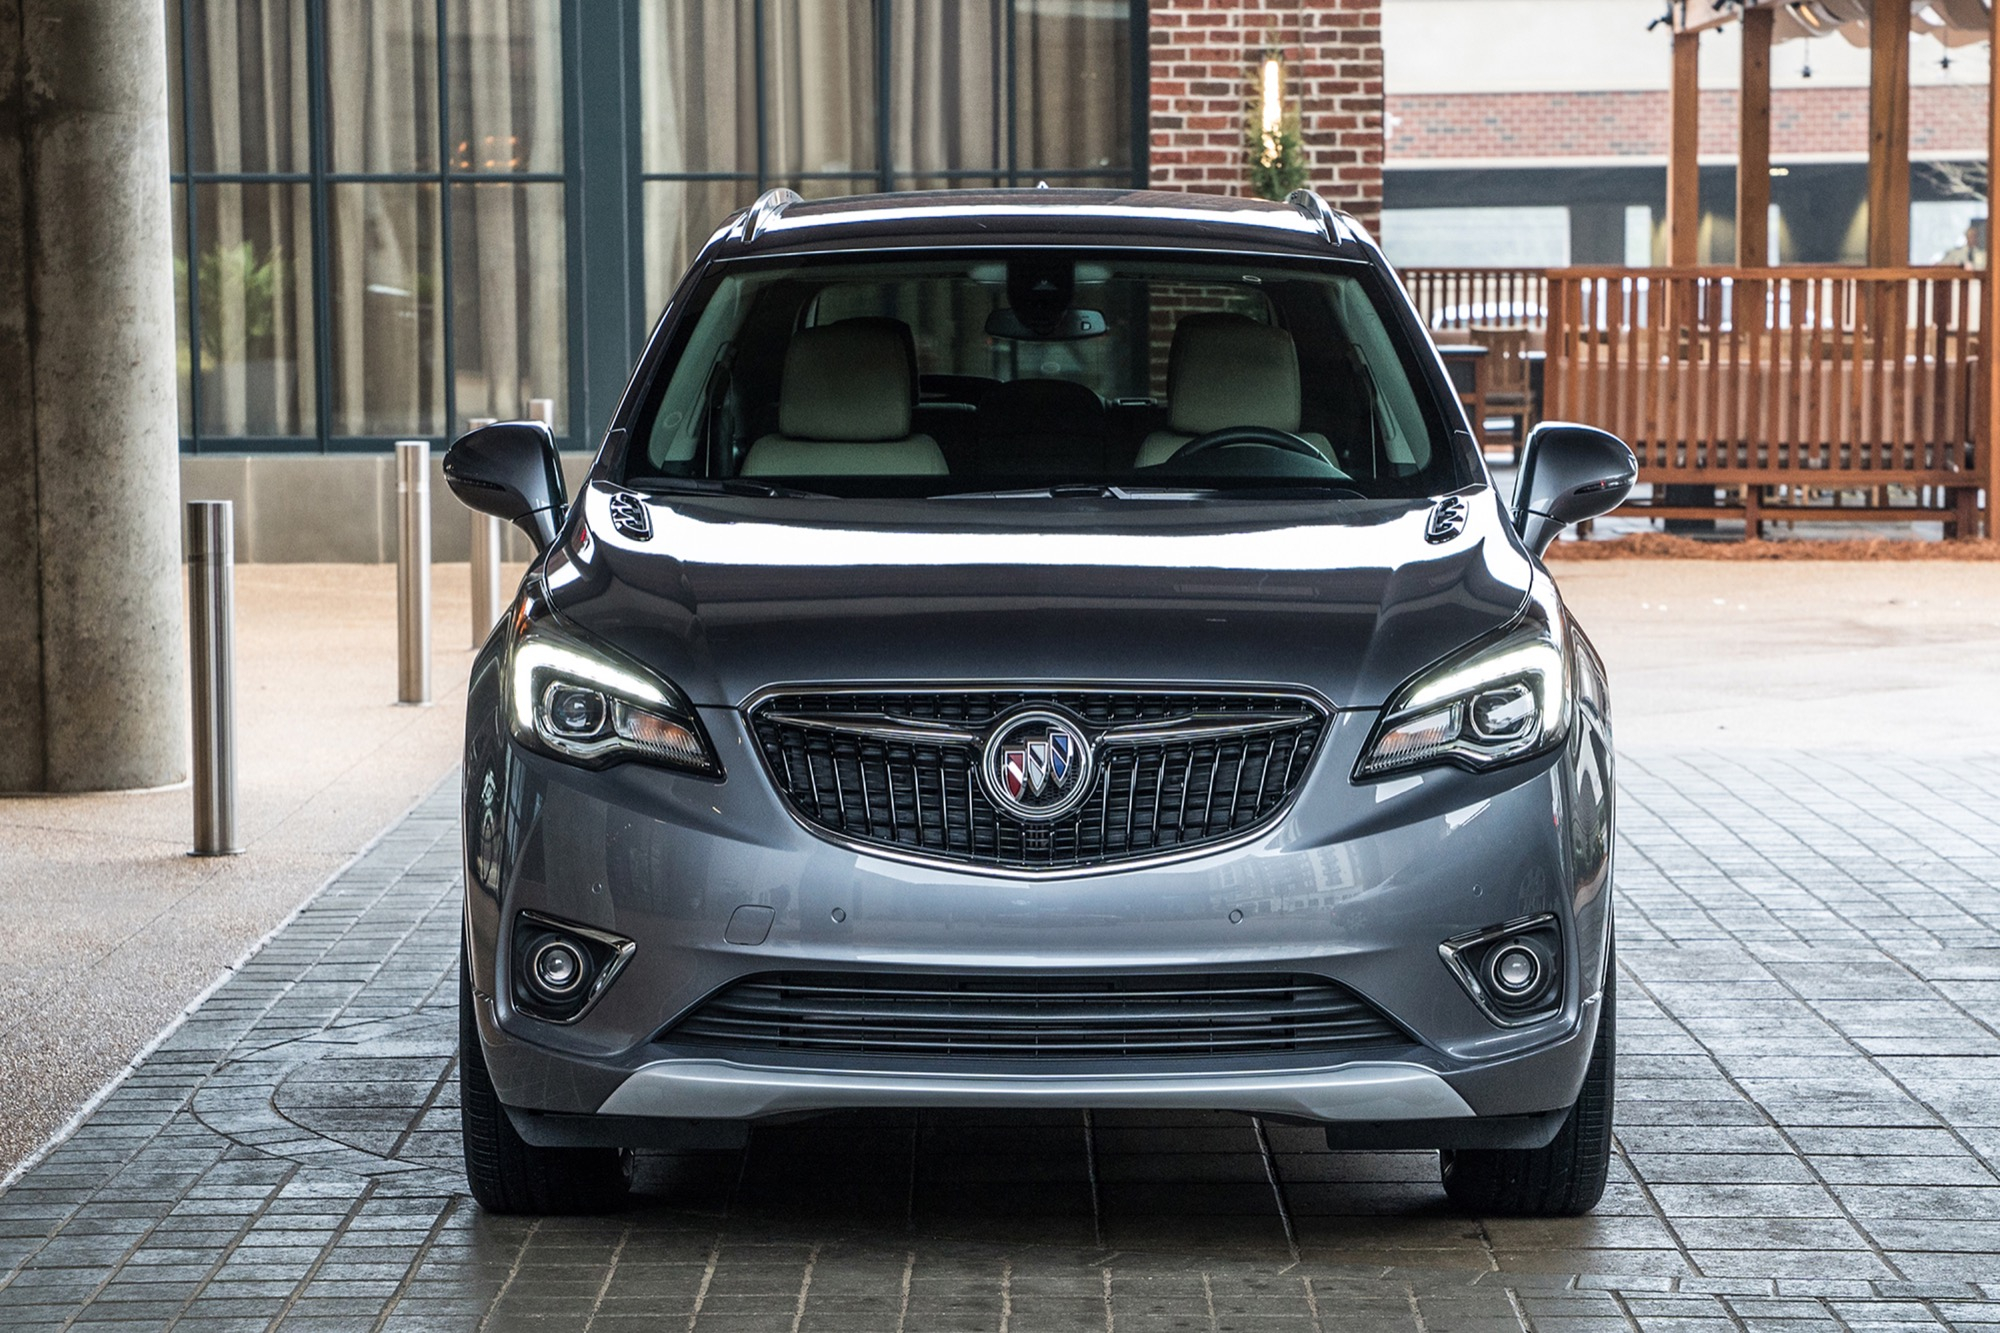 2019 Buick Envision Interactive Questions & Answers | Gm Can A 2022 Buick Envision Be Flat Towed